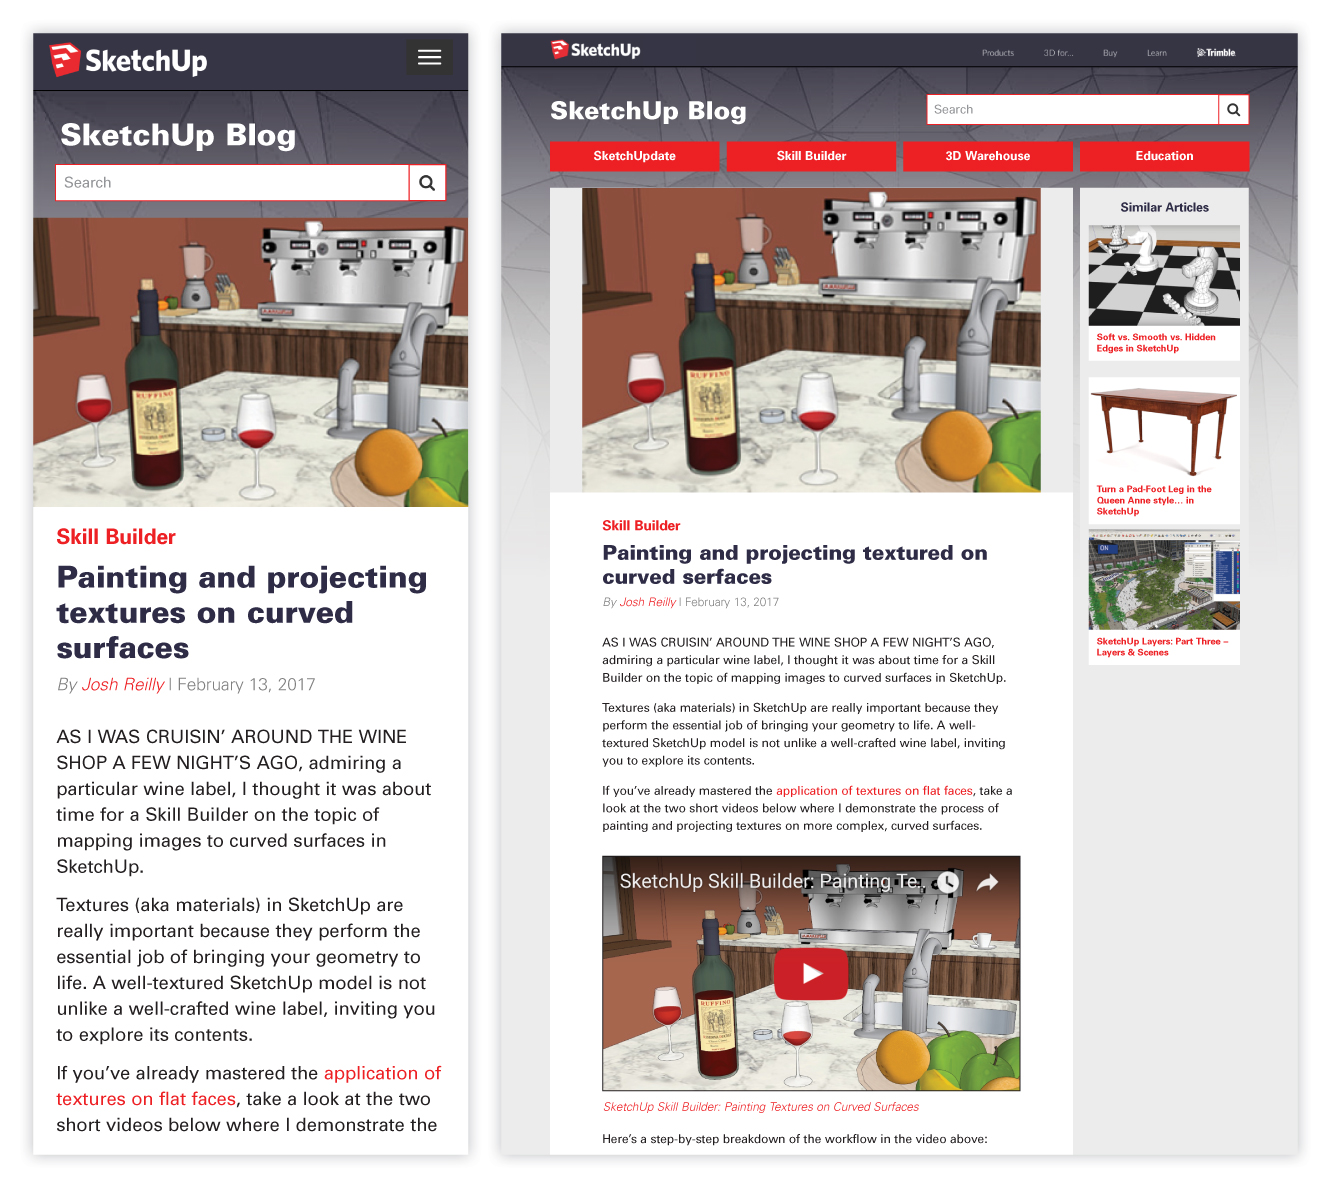 SketchUp Blog Case Study and Redesign 6 of 6